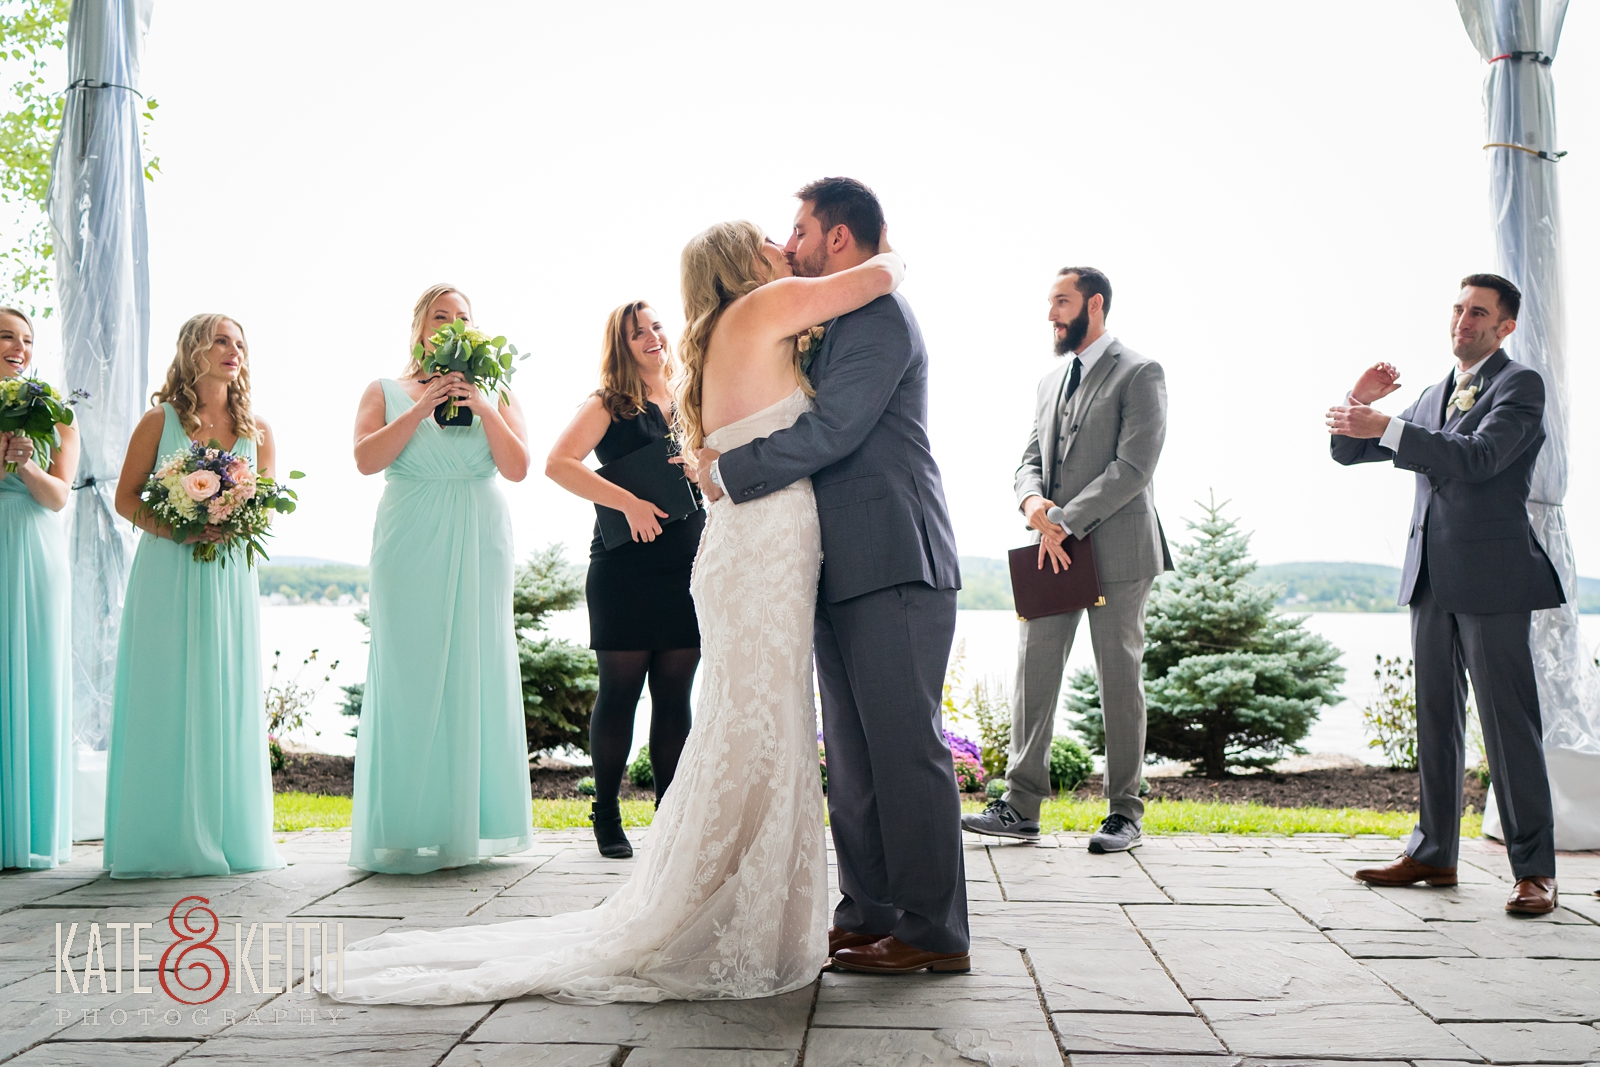 New Hampshire, Lakes Region, Lake Winnipesaukee, The Margate Resort, wedding, outdoor wedding, lakeside wedding, wedding ceremony, outdoor ceremony, tented ceremony, first kiss, wedding kiss, married, laughter and applause, wedding moments